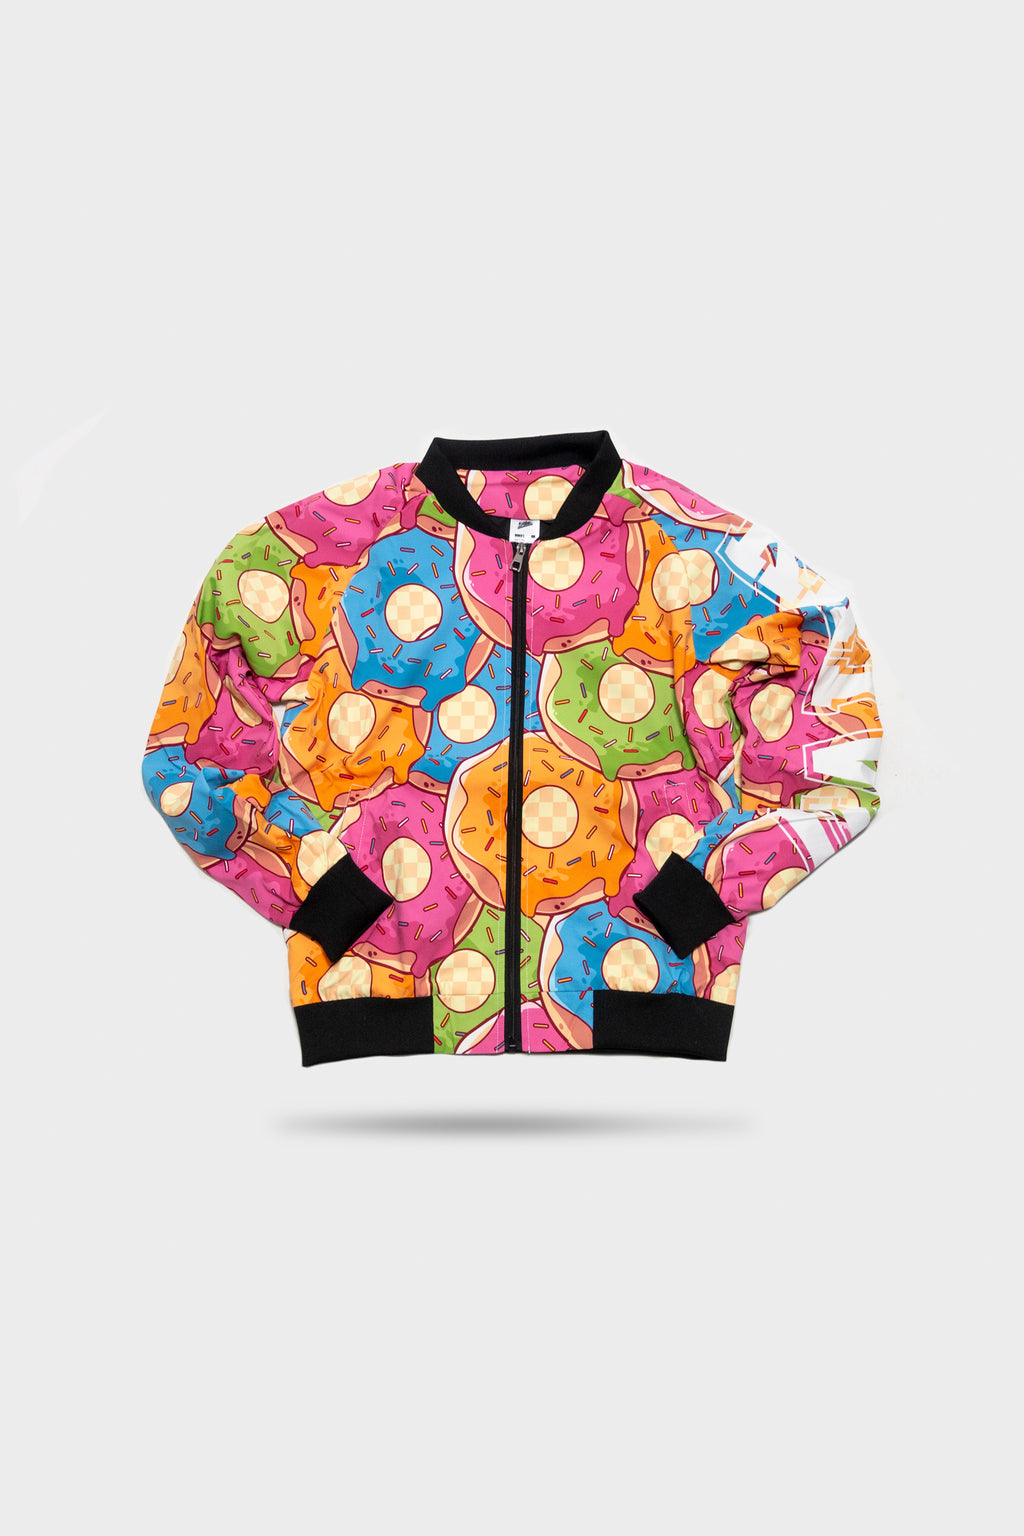 Donut Bother Me WMNS Bomber Jacket (001)